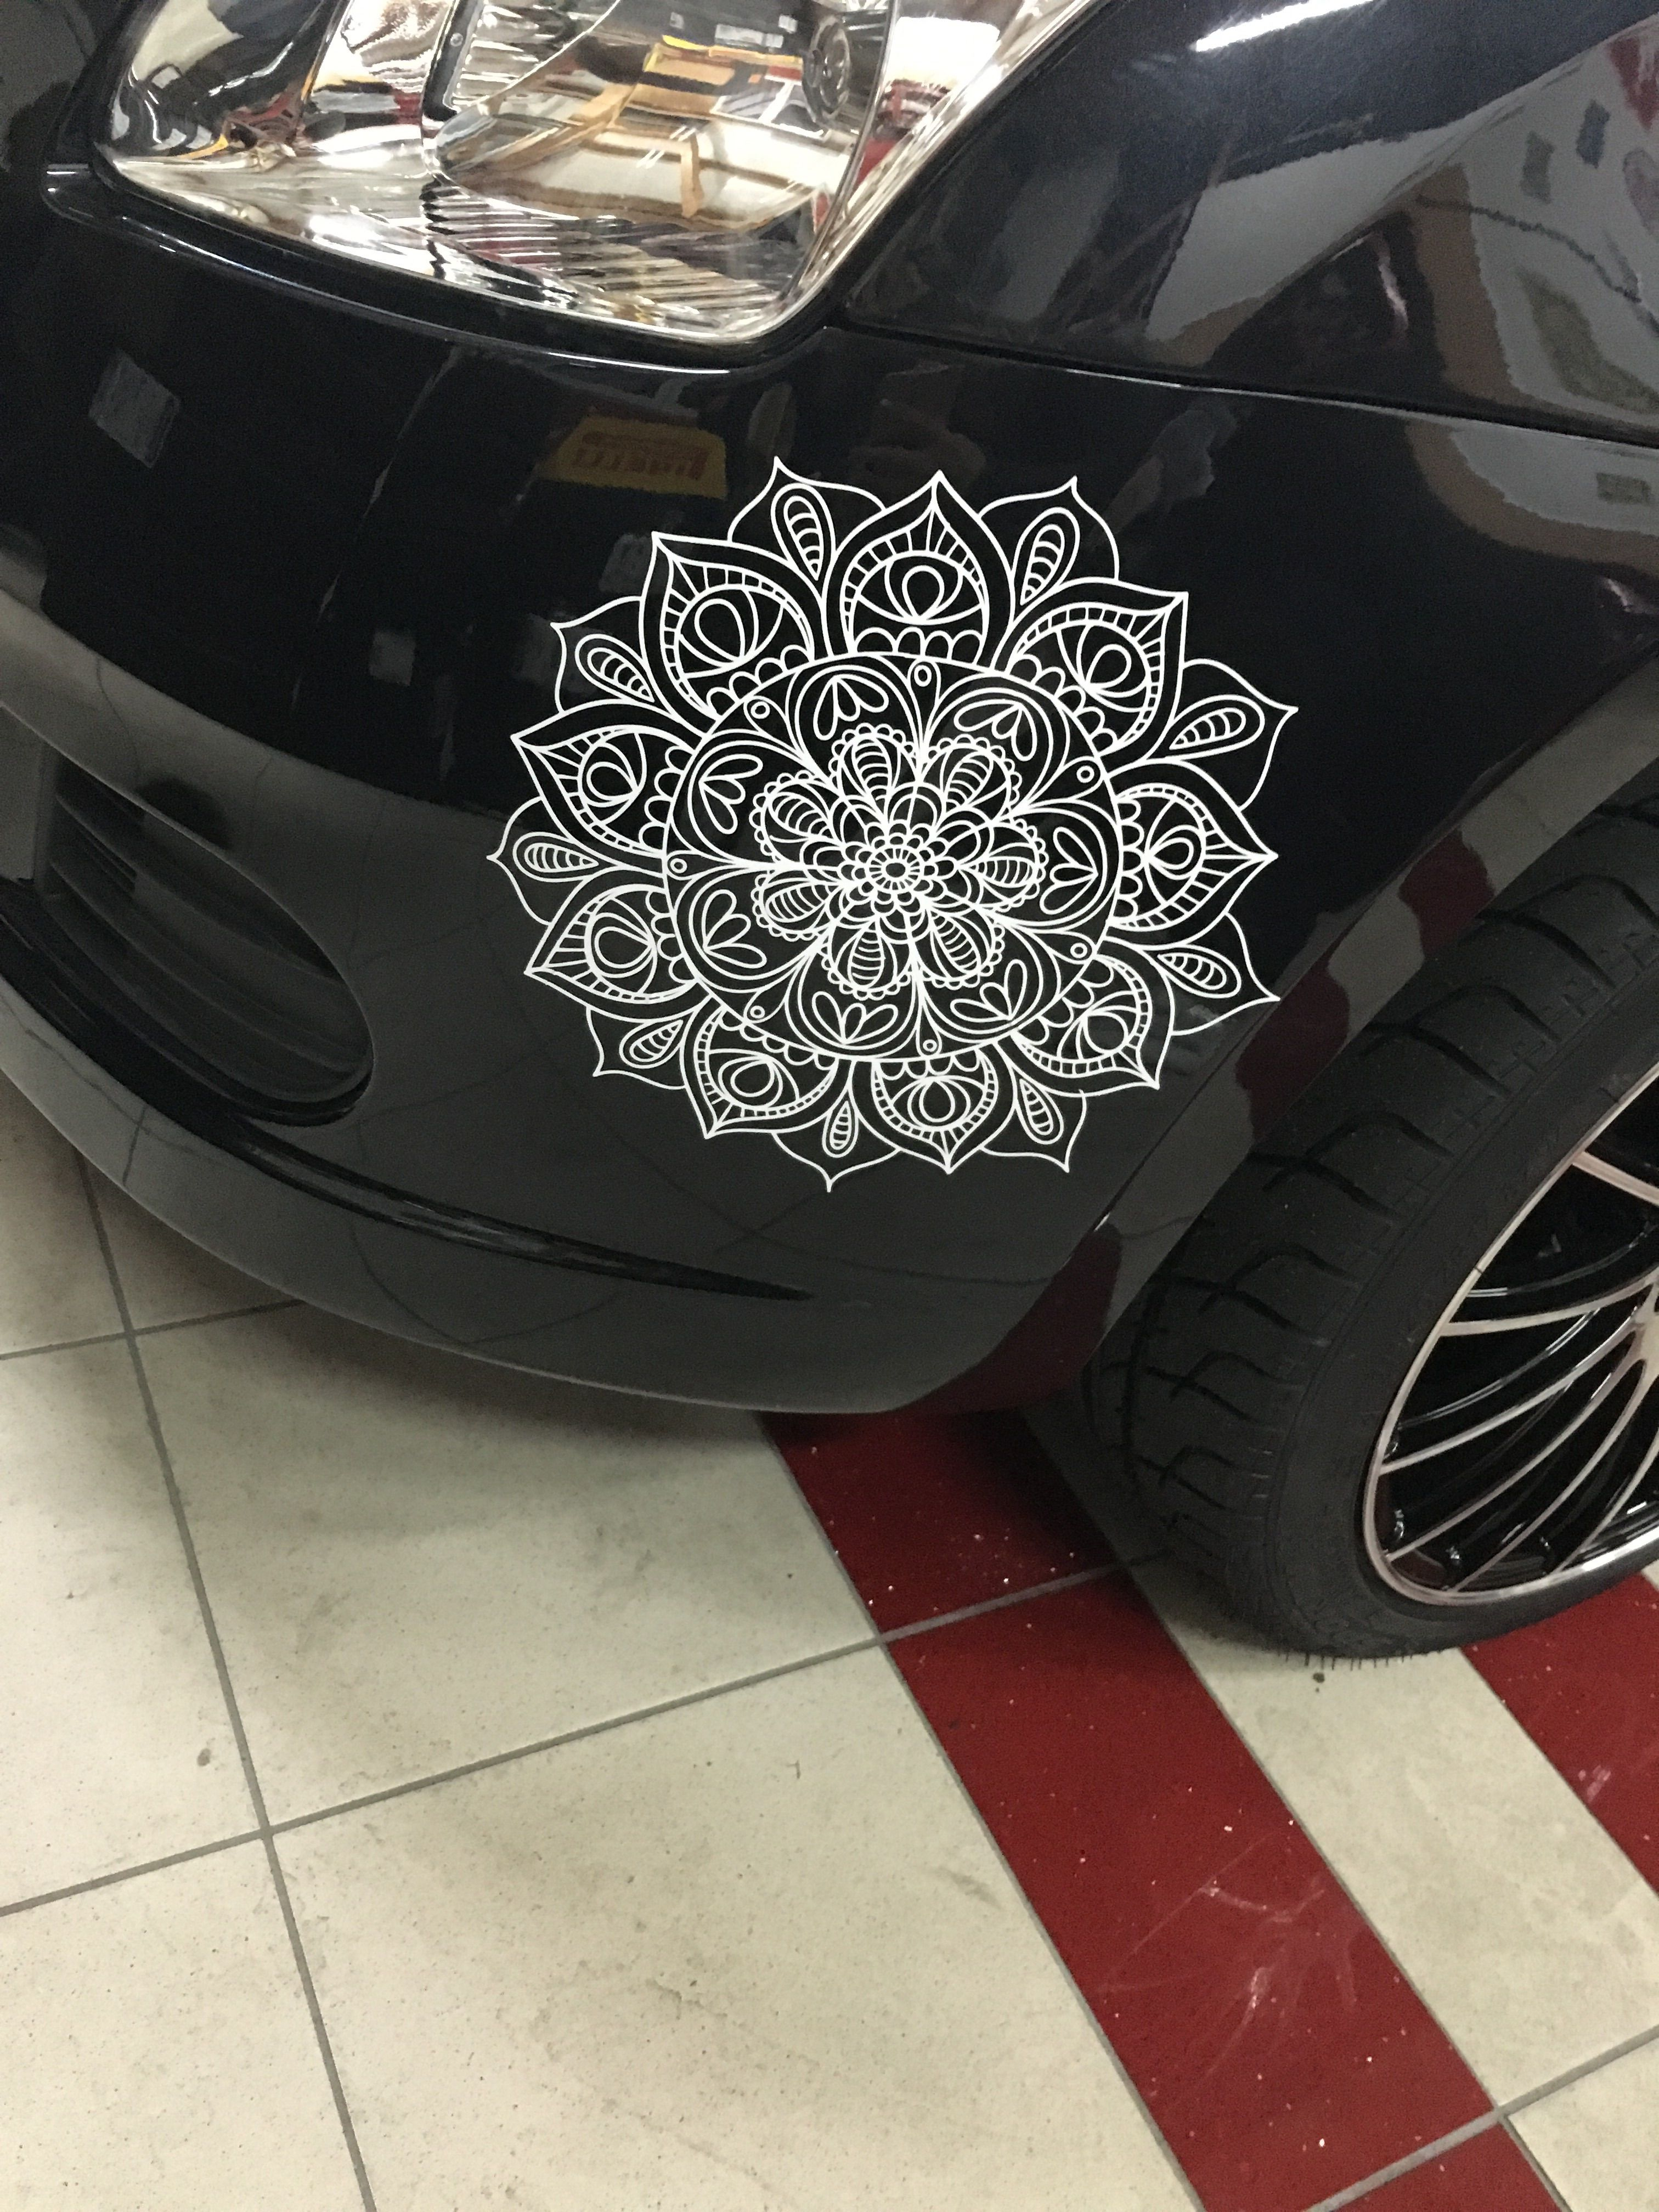 Mandala Car Decal from www.NikkisMandalas.com www.Amazon.com /handmade/NikkisMandalas